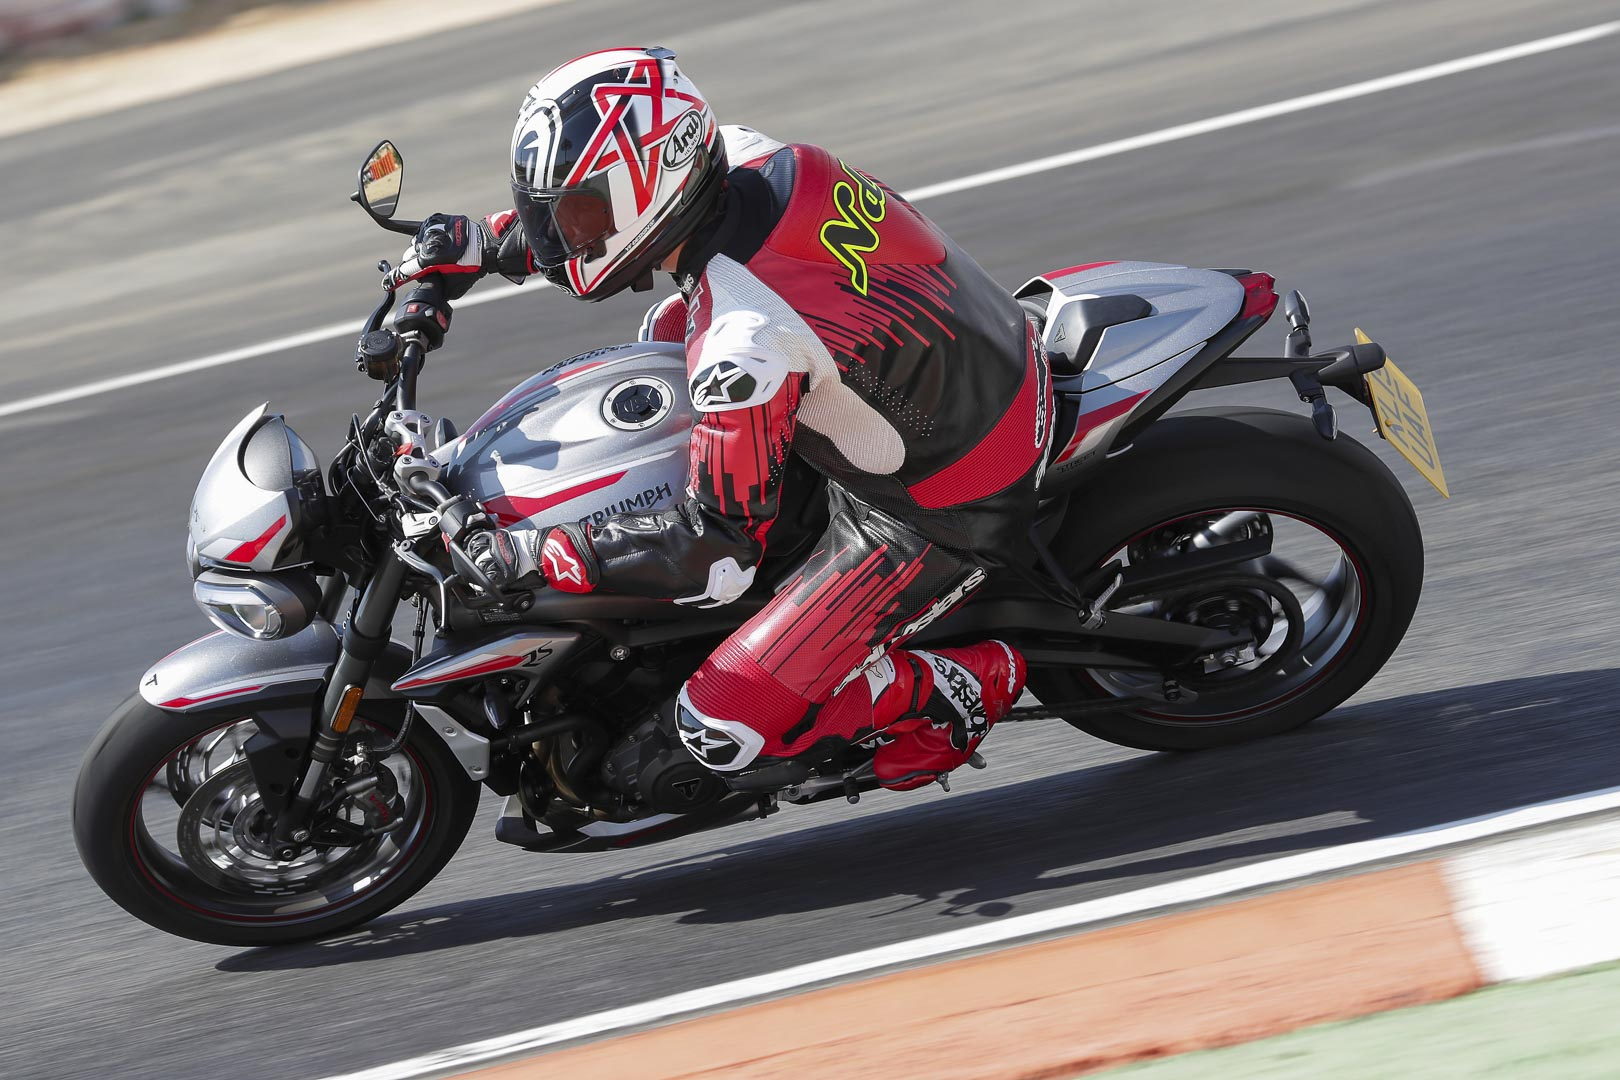 2020 Triumph Street Triple RS Review - Track test